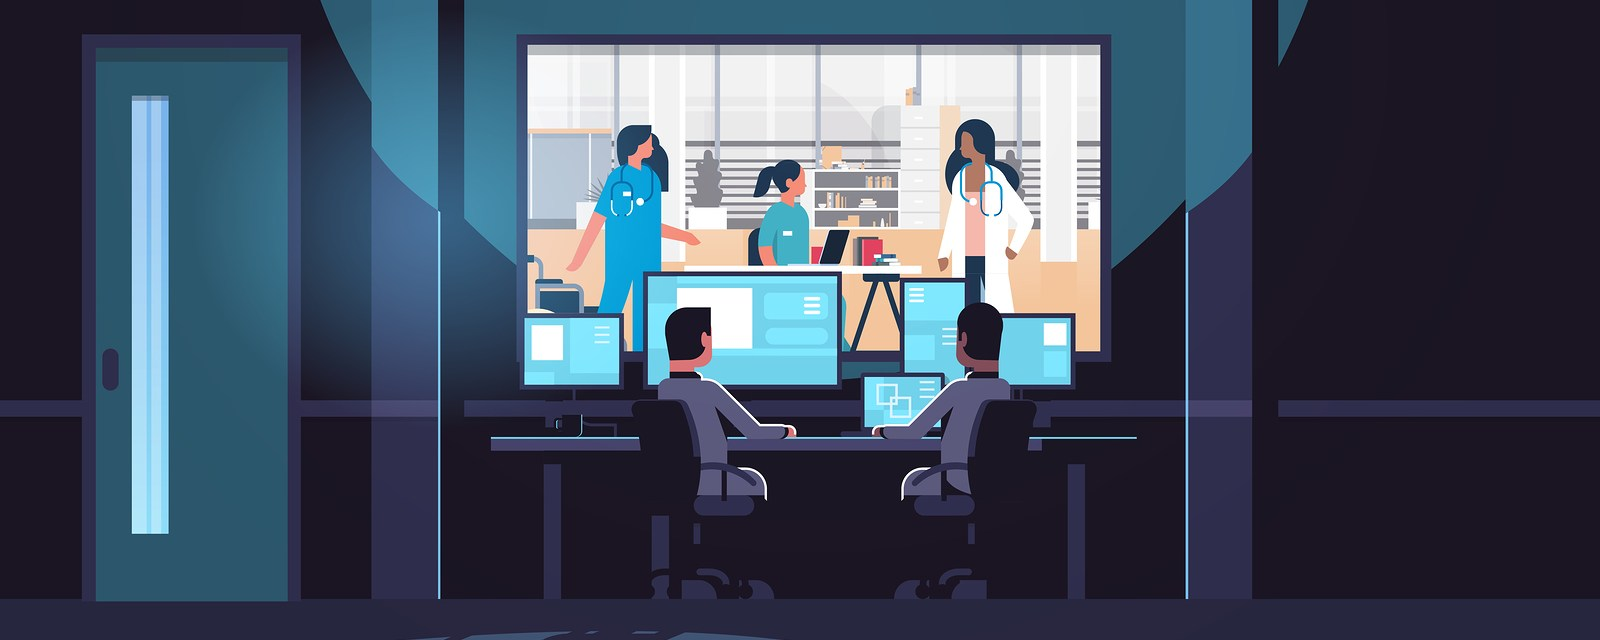 Ransomware A Plague In The Healthcare Industry